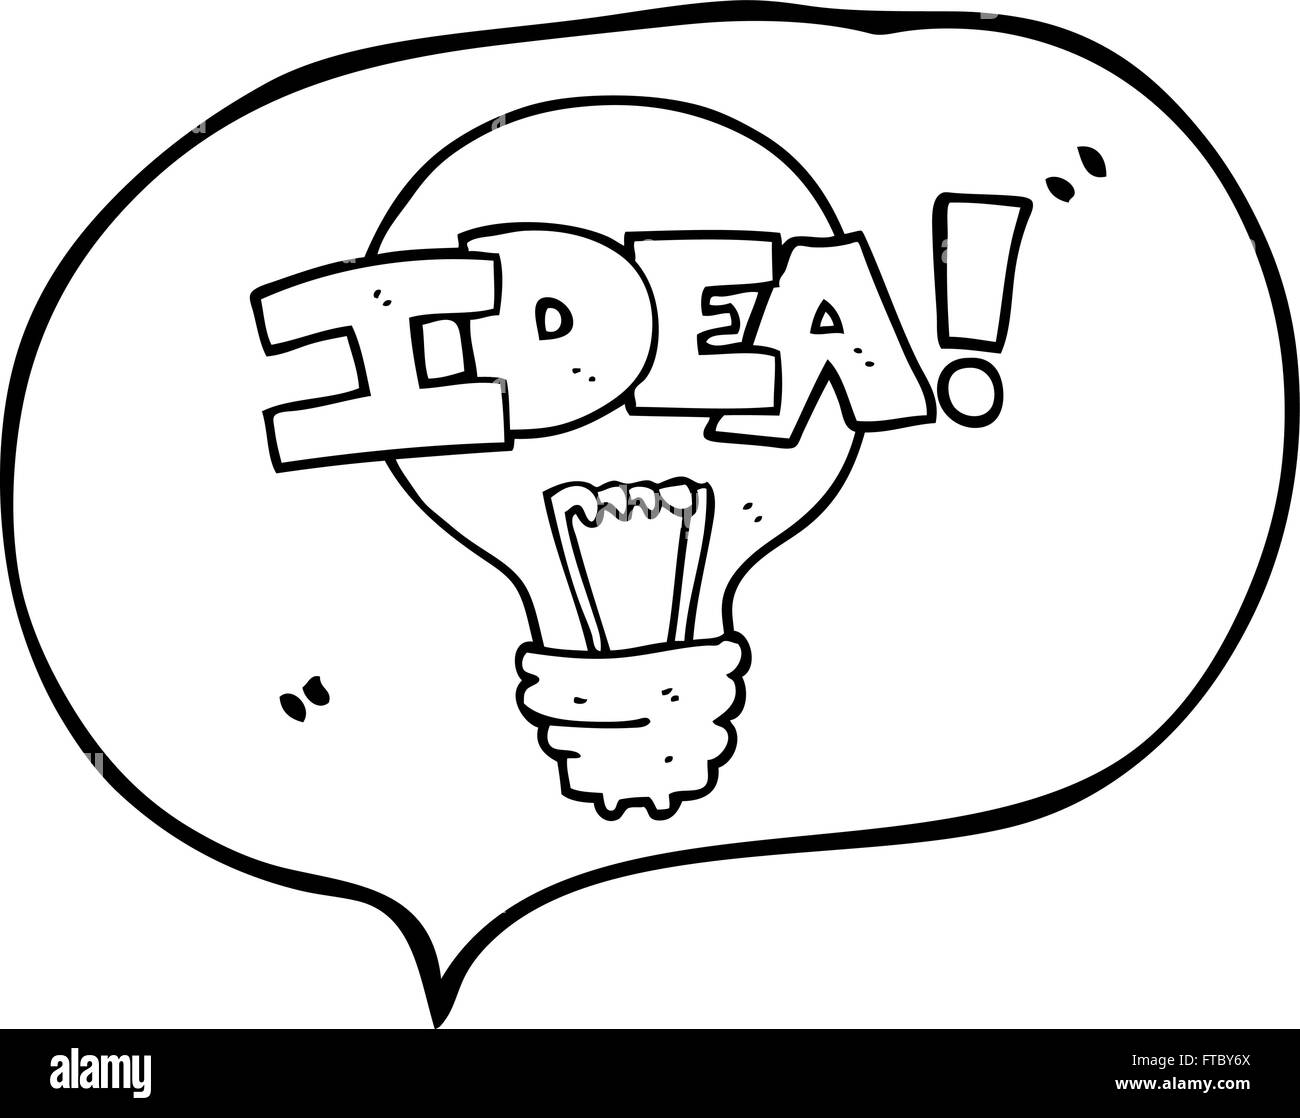 Set Of Hand Drawn Light Bulbs Symbol Of Ideas Stock: Freehand Drawn Speech Bubble Cartoon Idea Light Bulb